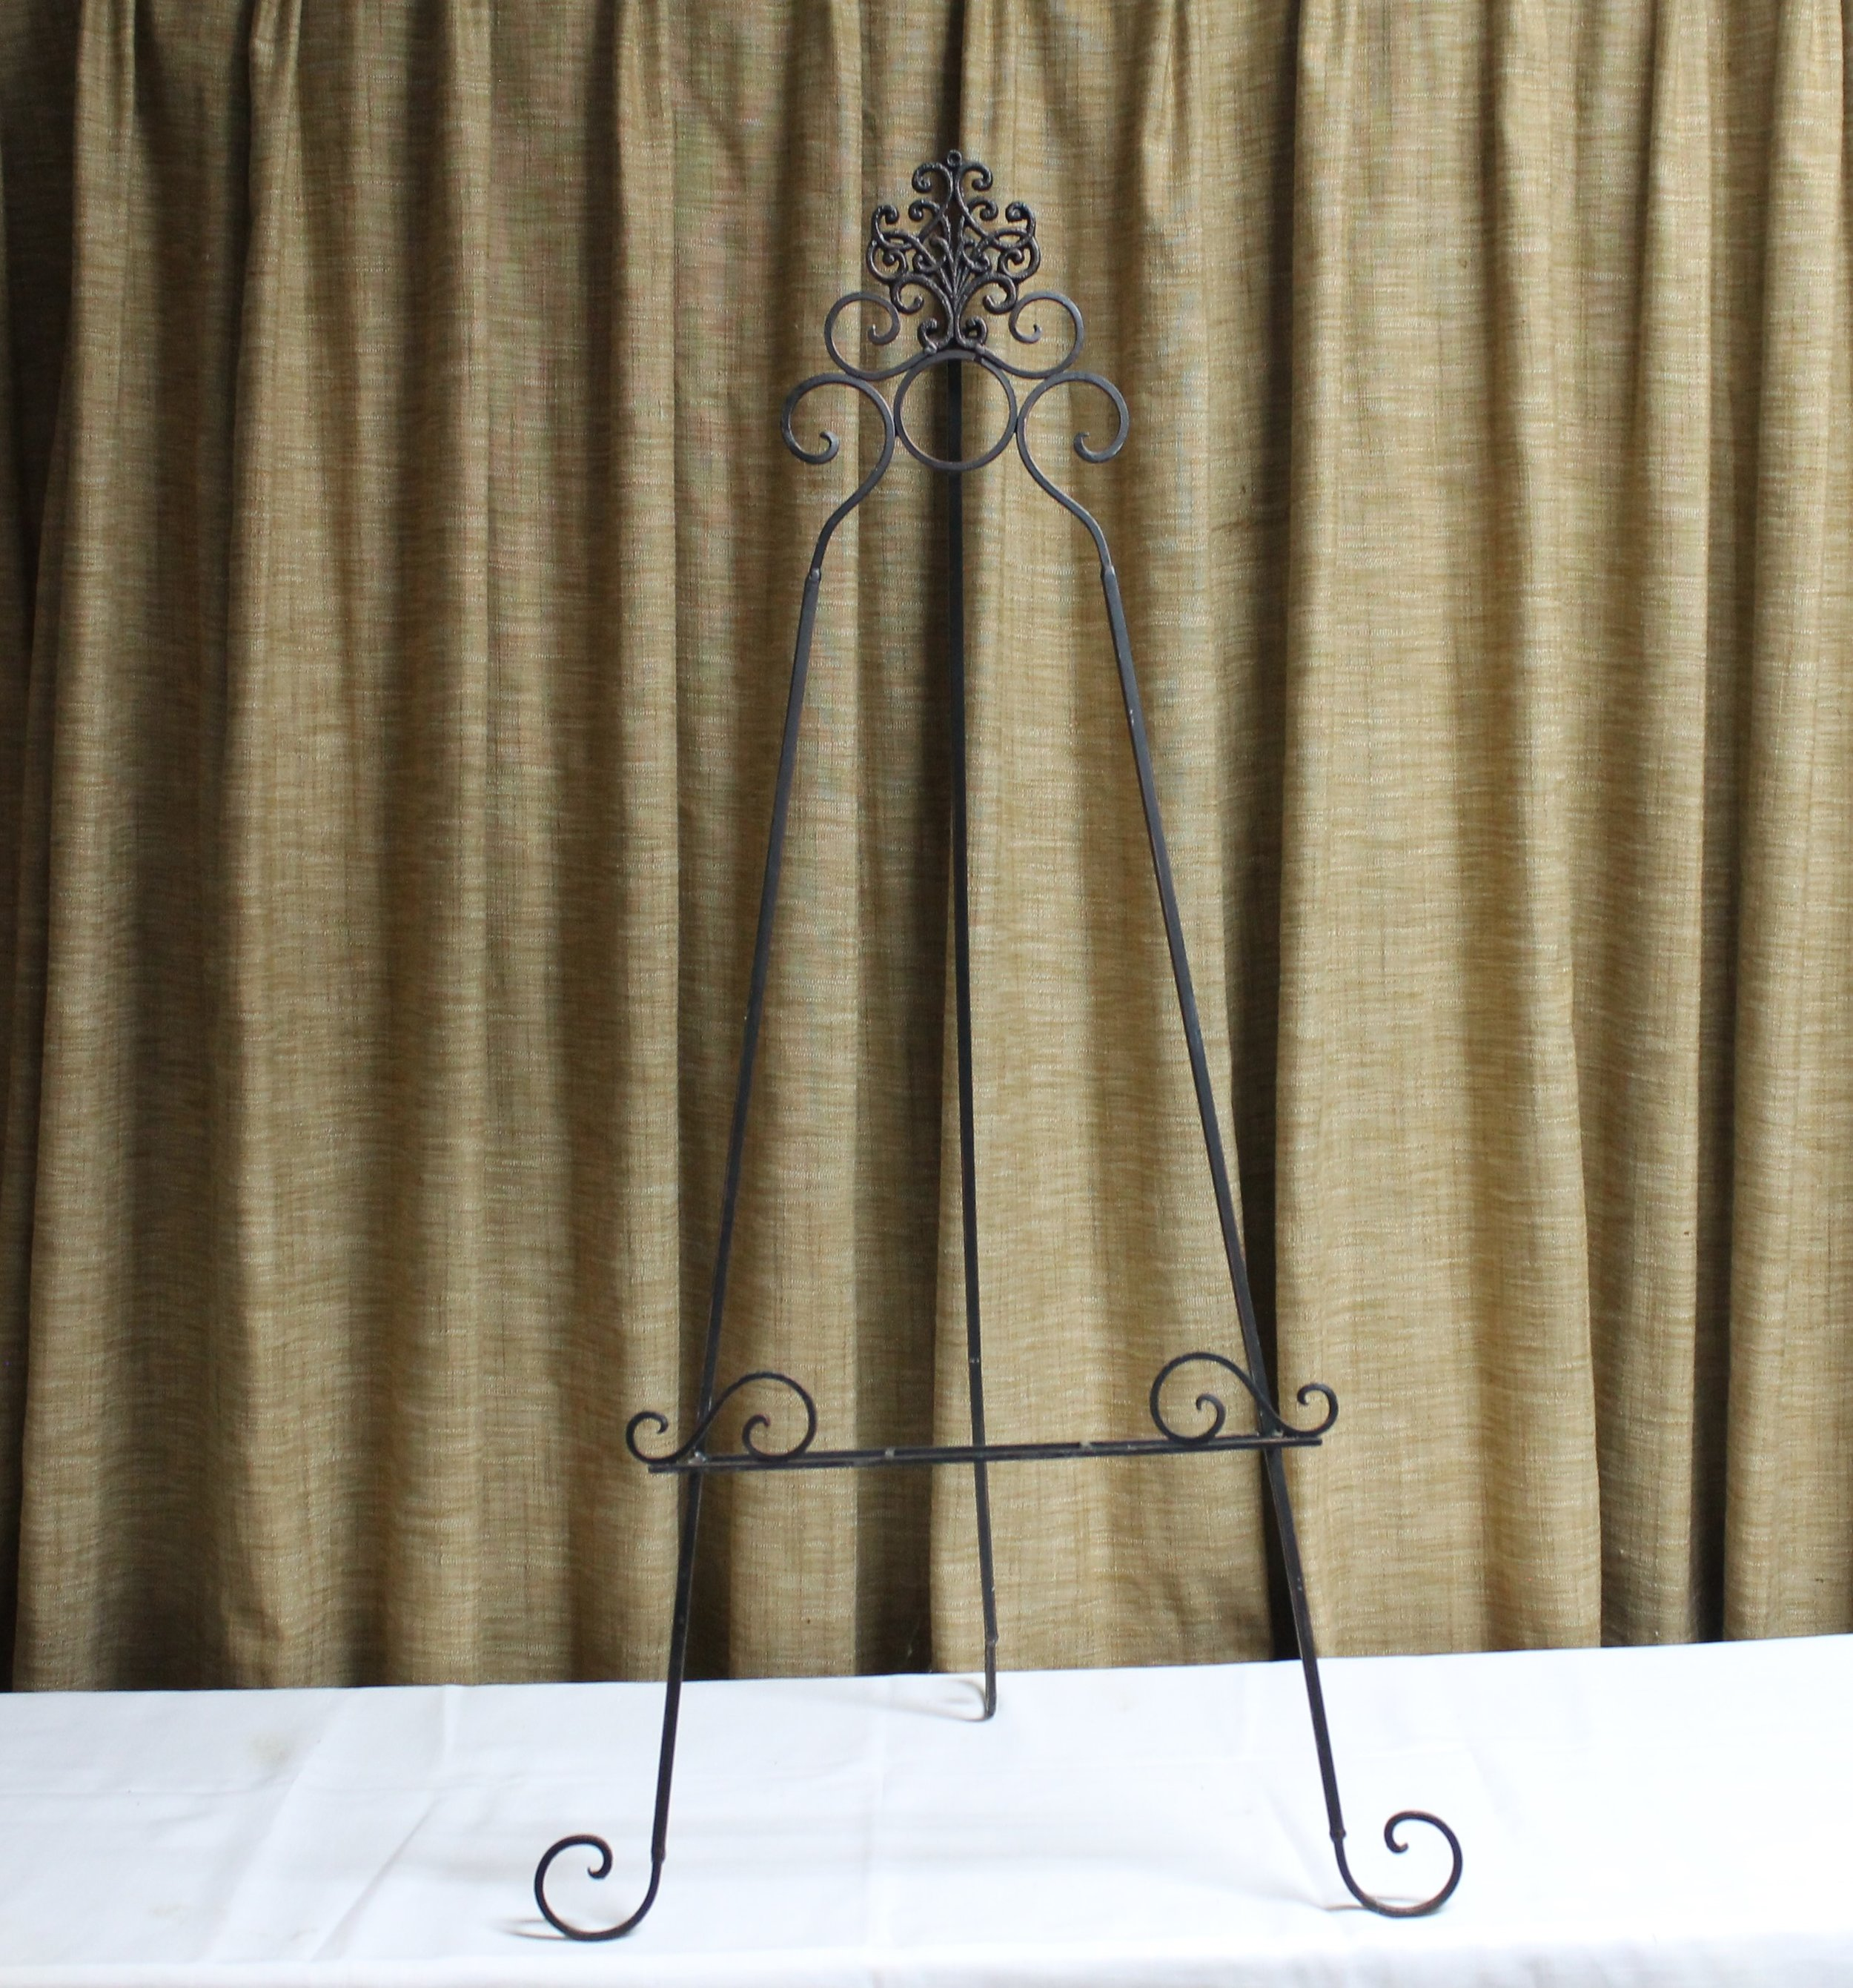 Tabitha: Black Iron Table Top Easel